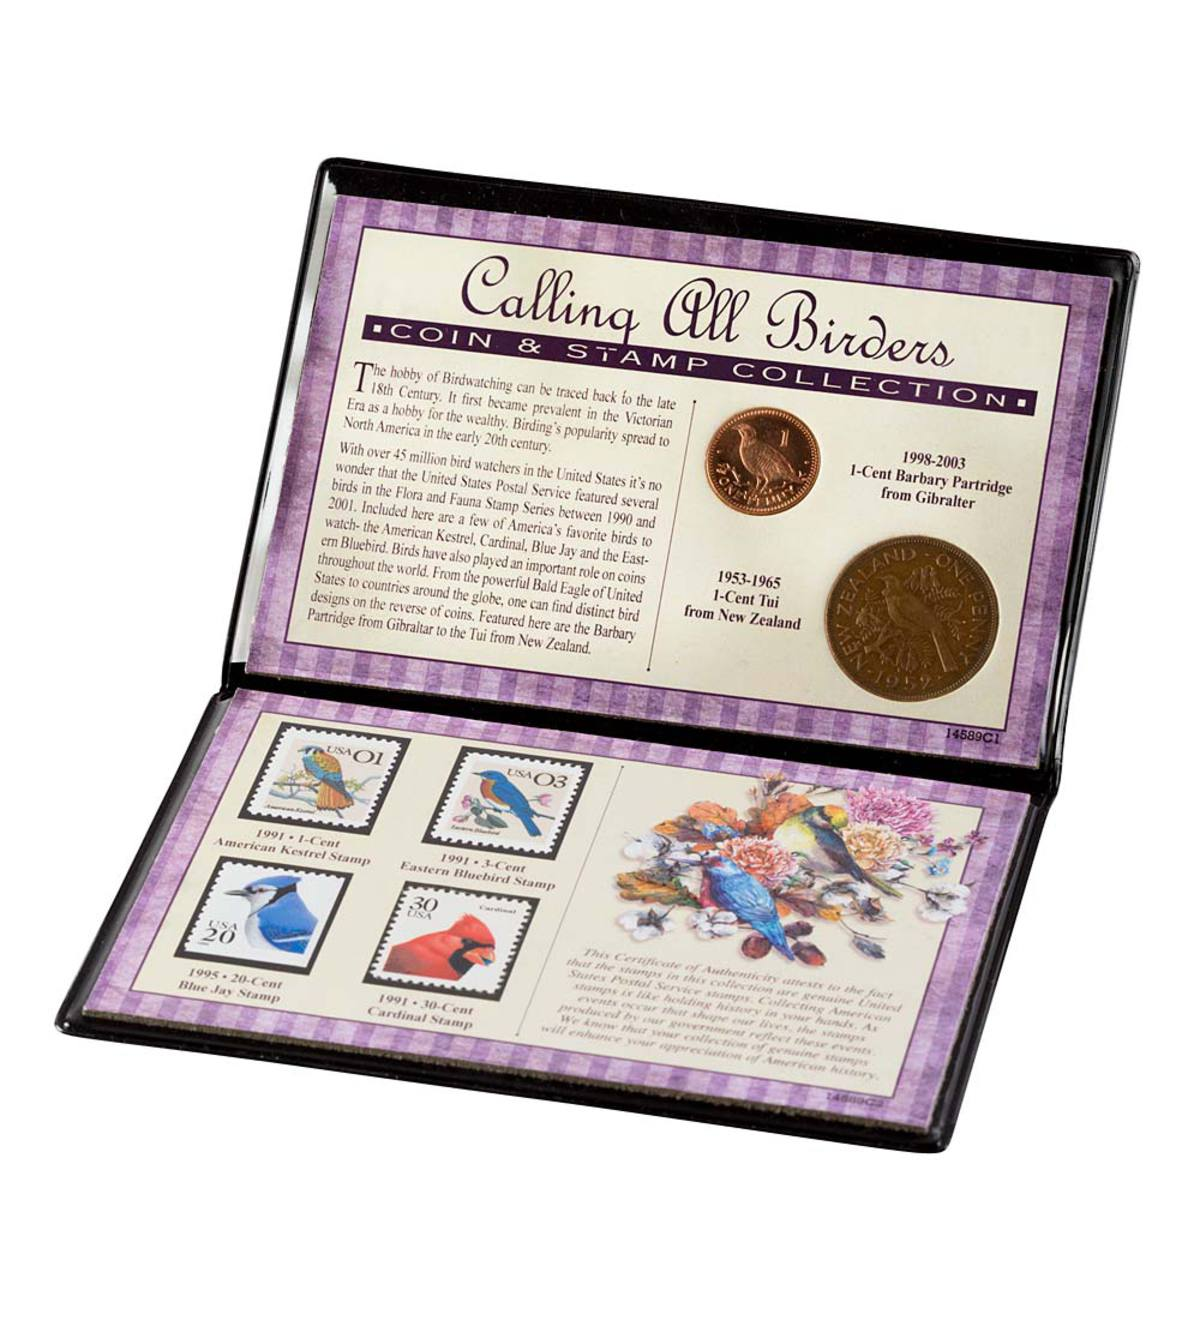 Birds Coin and Stamp Collection